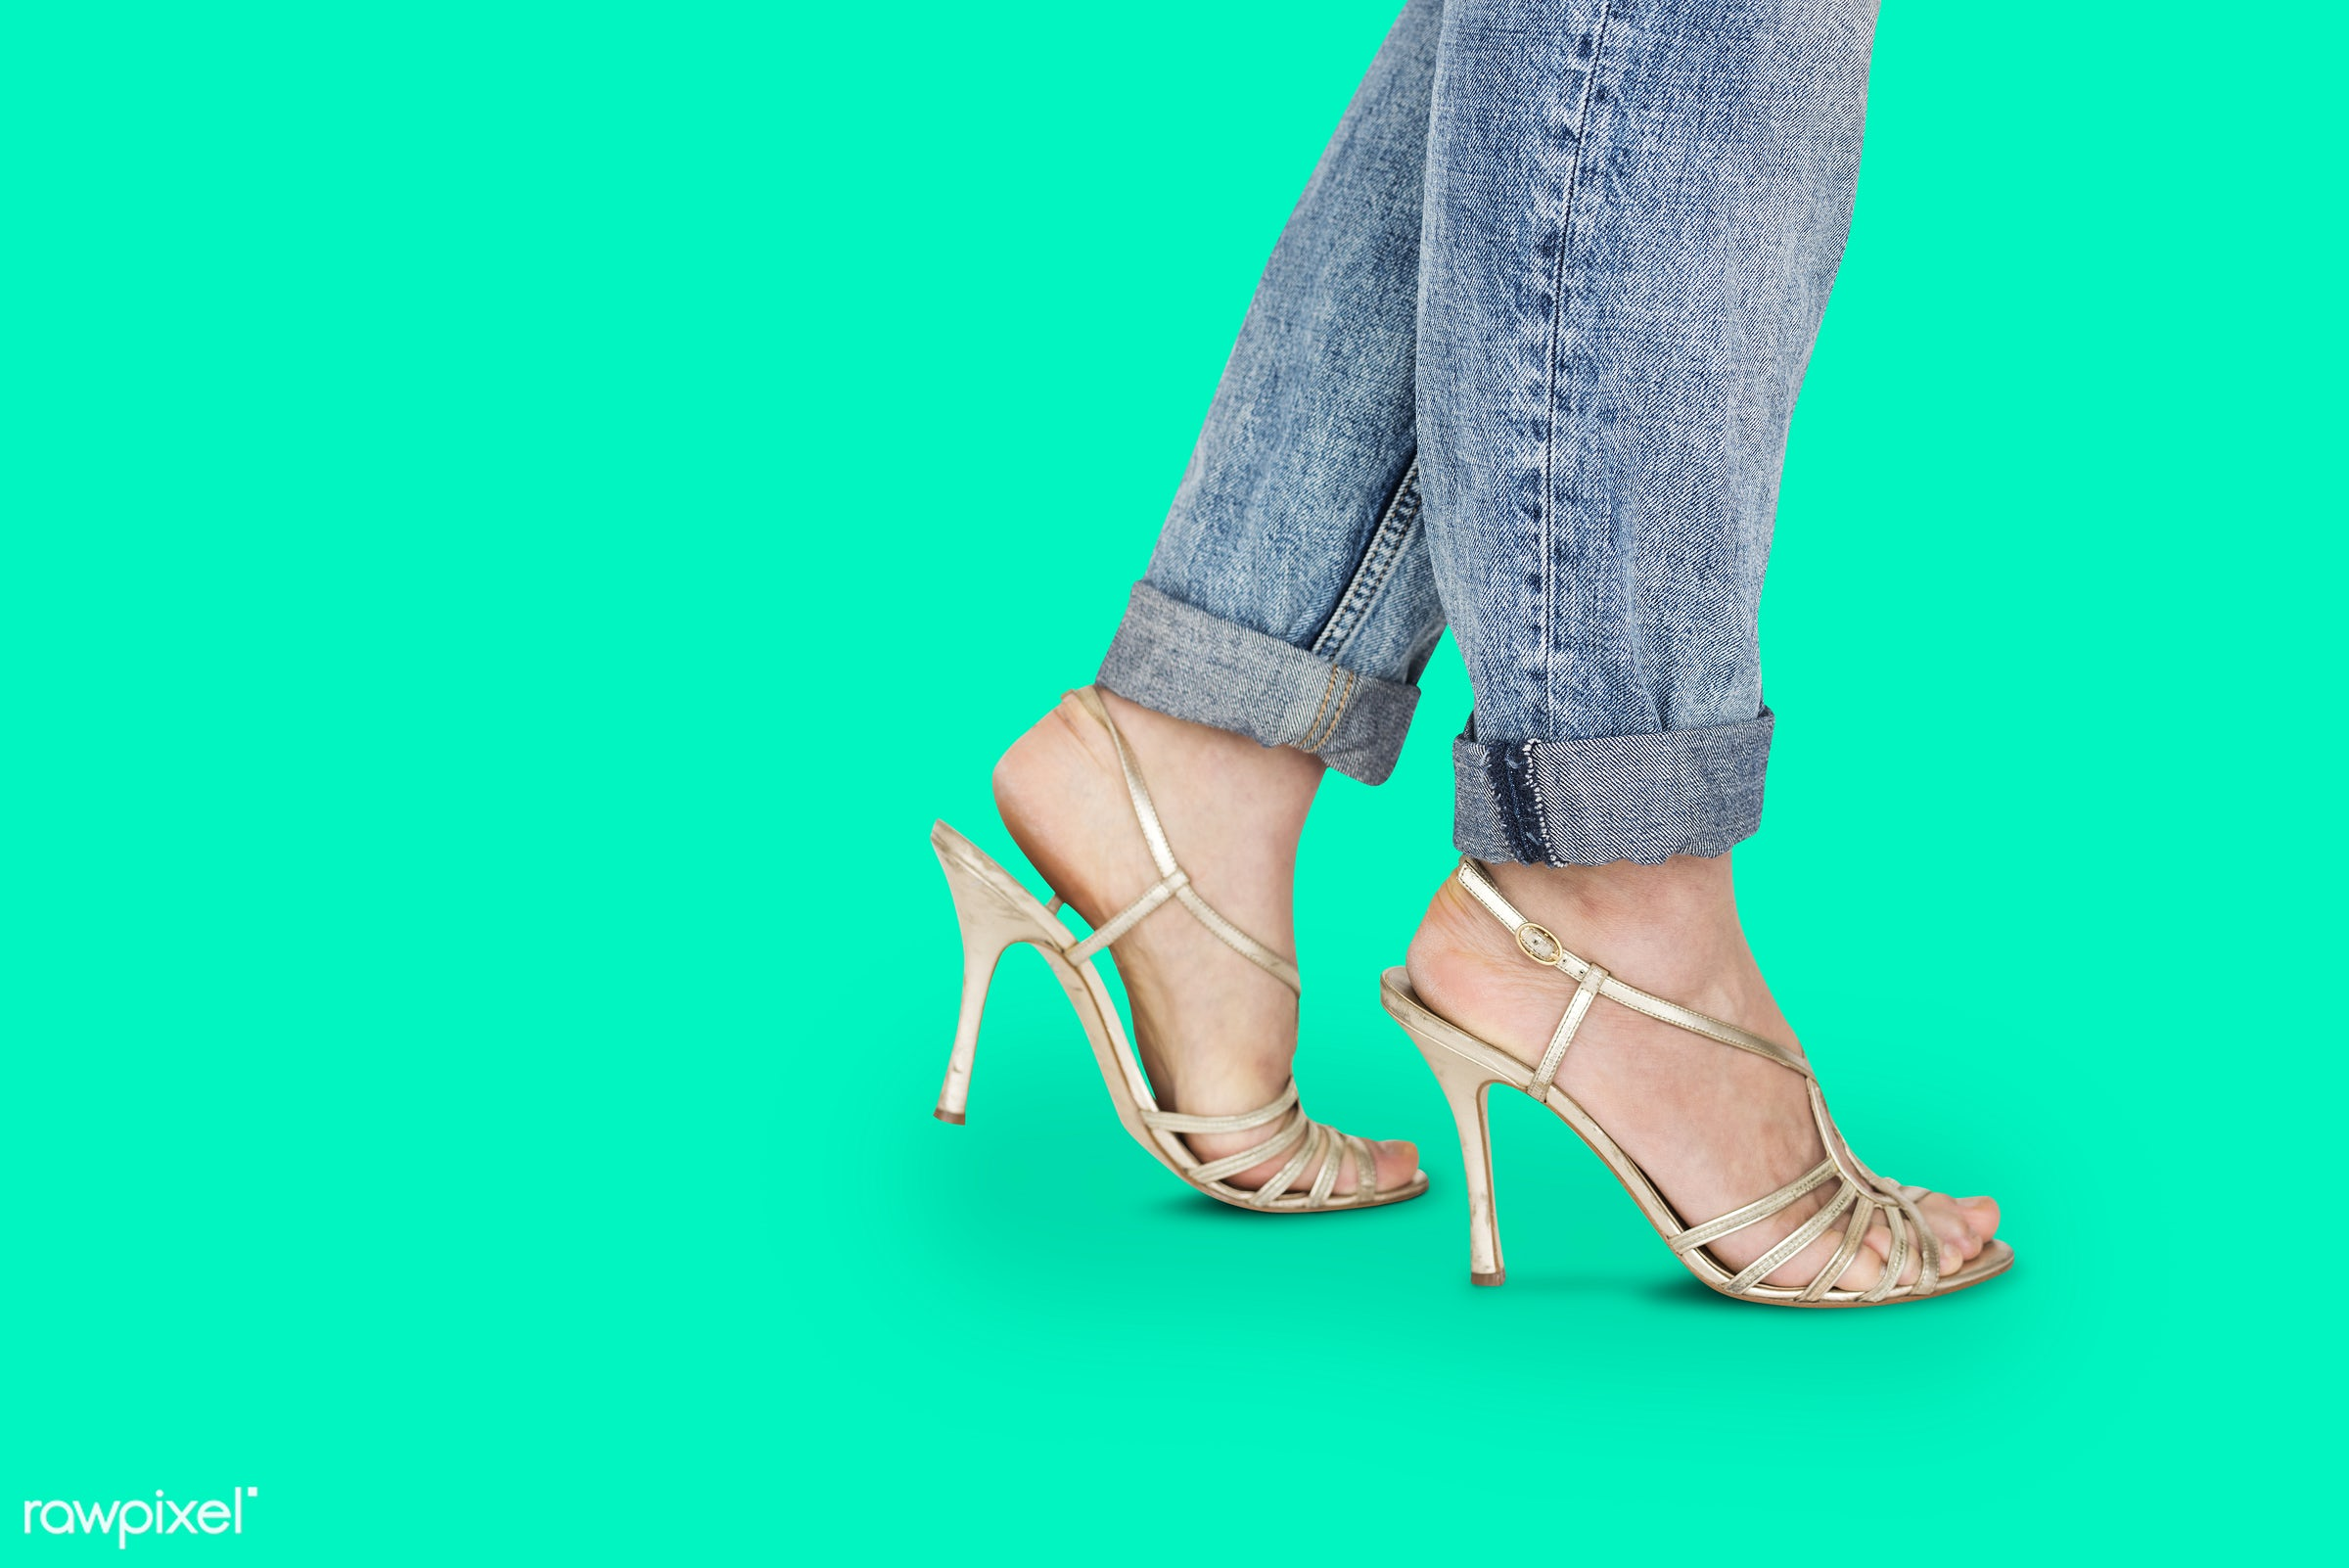 studio, fashion, model, person, people, race, style, solo, woman, lifestyle, casual, feminism, shoes, isolated, green, jeans...